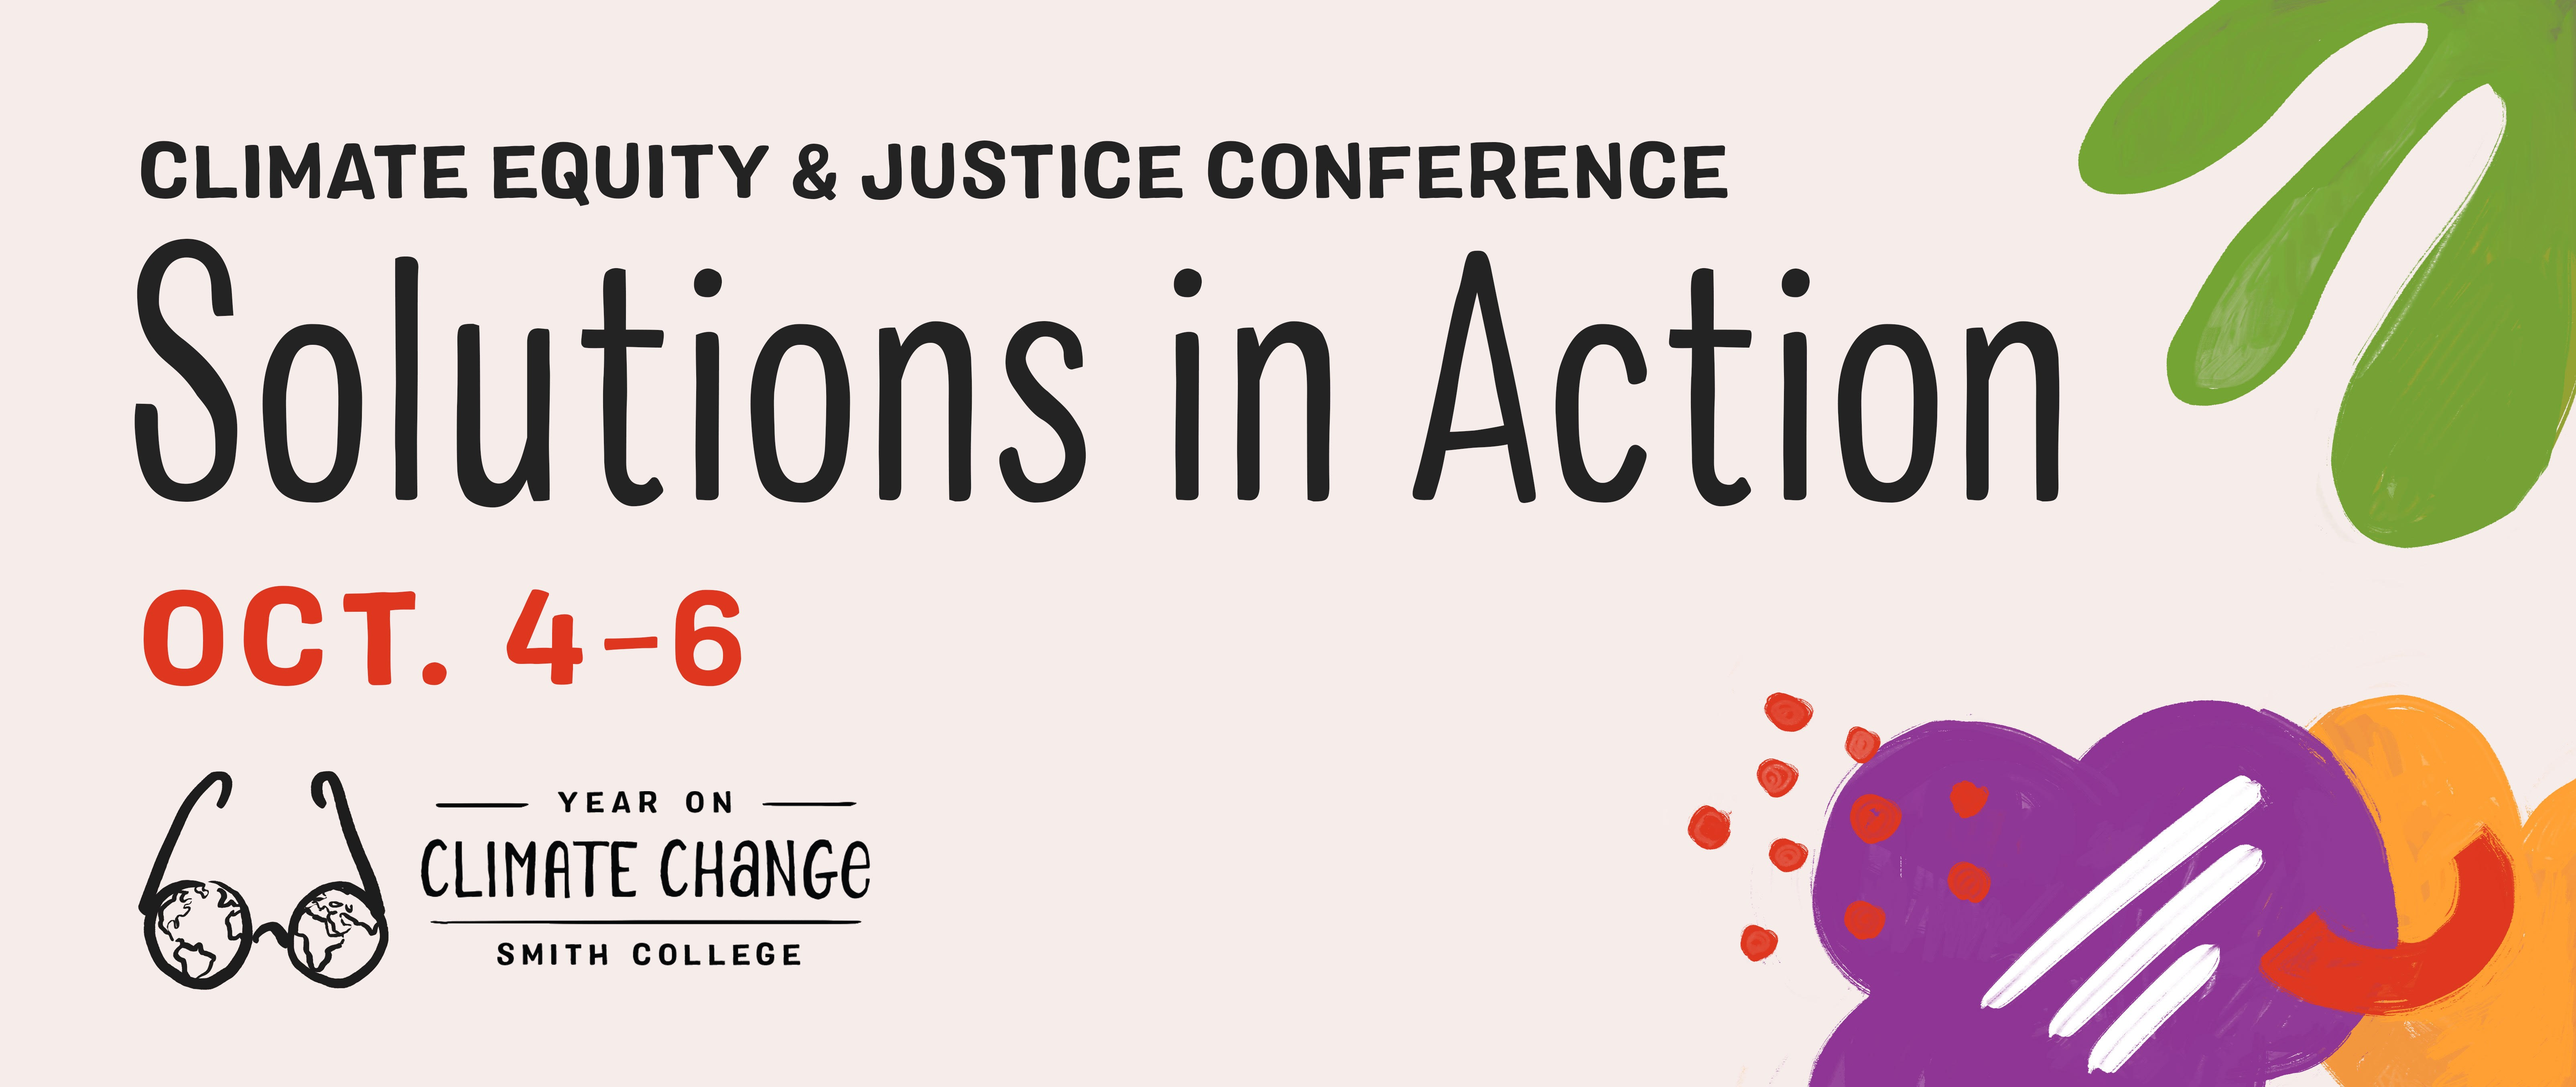 Climate Equity & Justice: Solutions in Action Conference